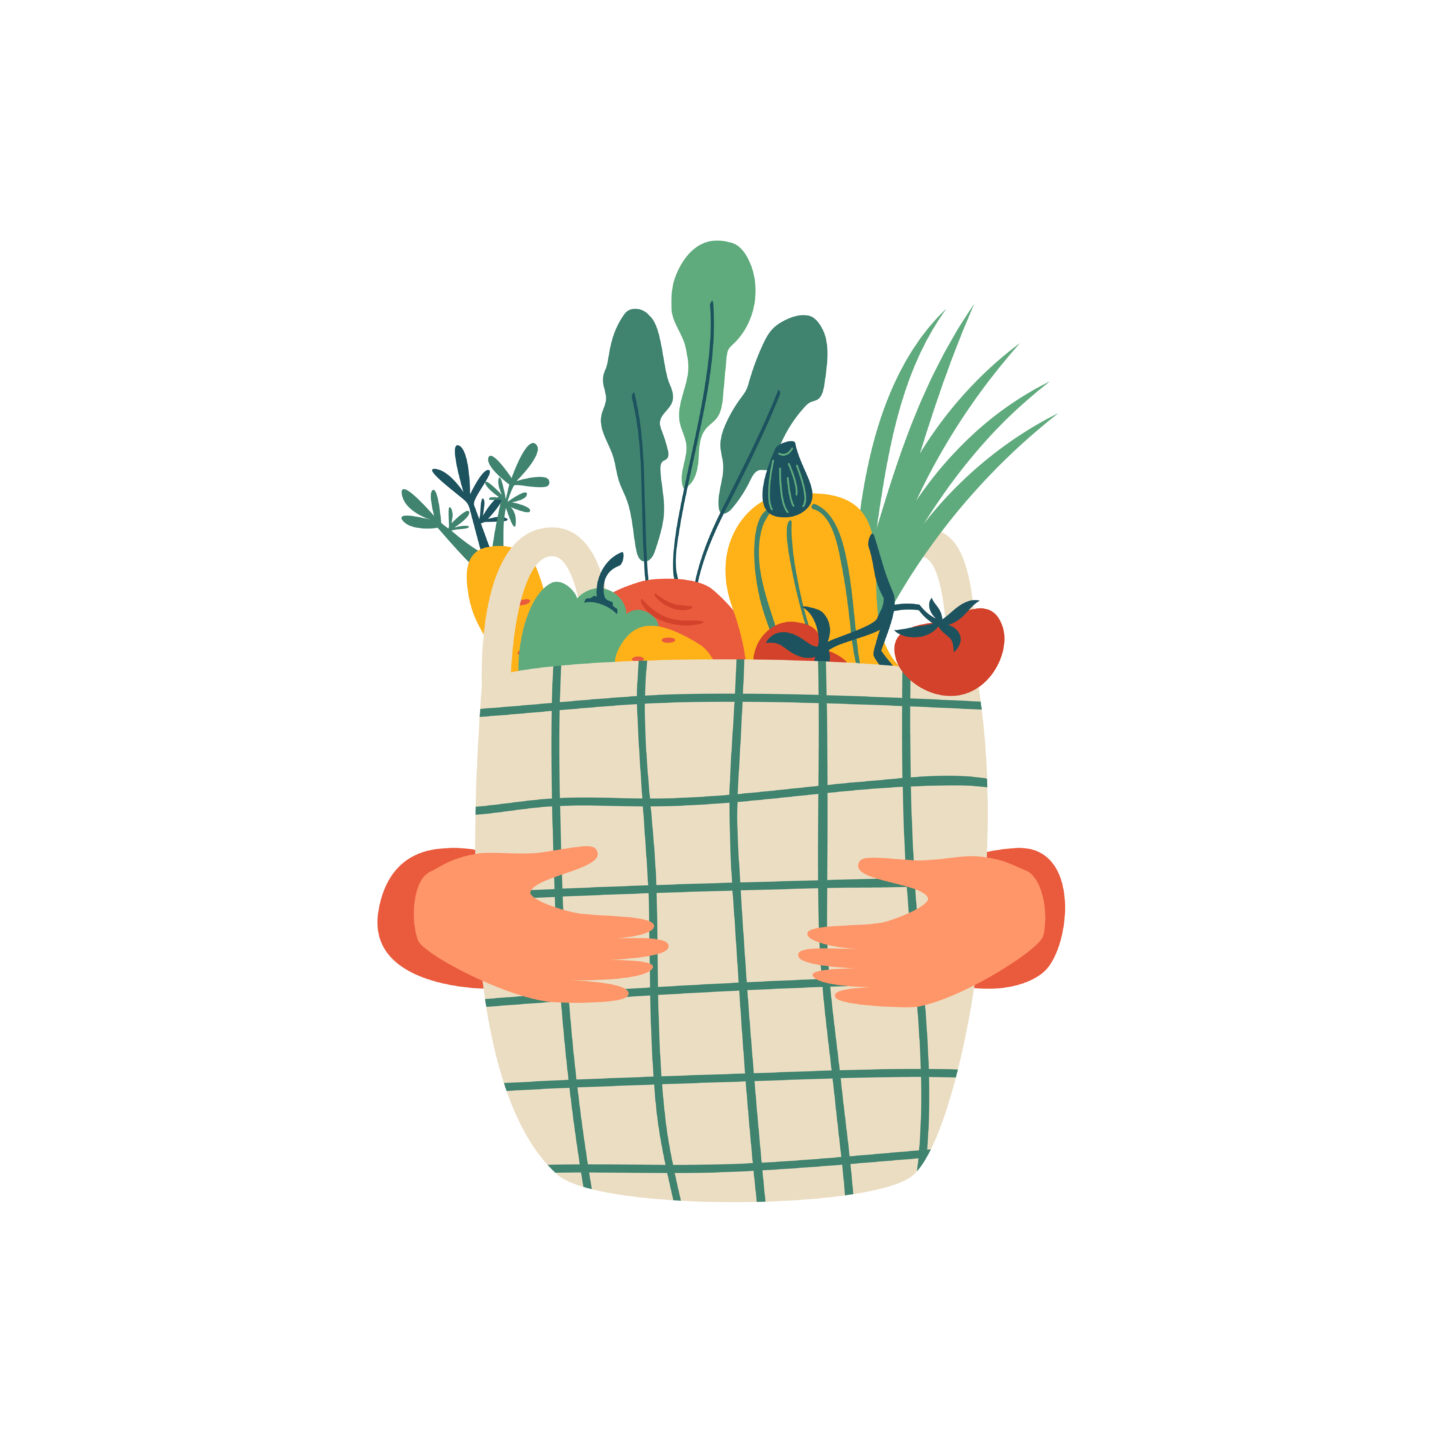 Food in basket illustration